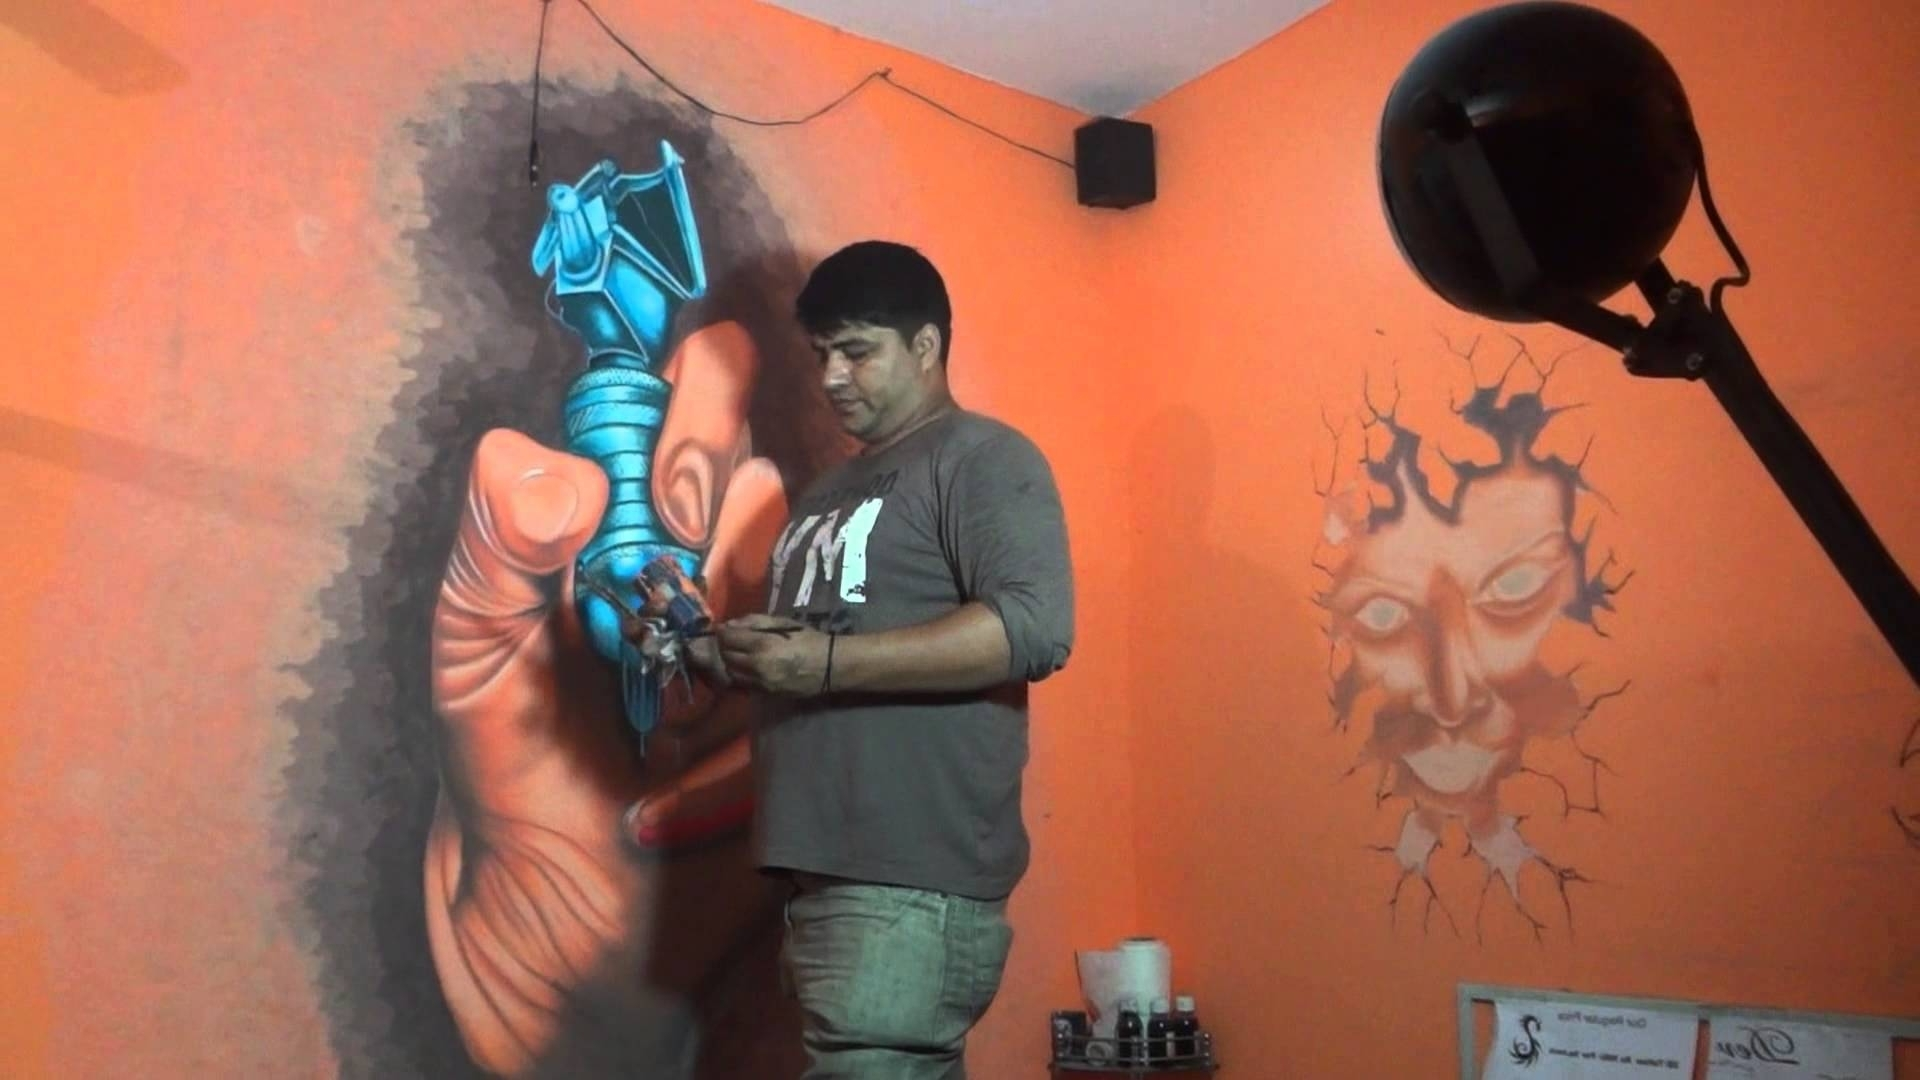 Tattoo Shop Wall Artdev 9313666999 – Youtube With Most Up To Date Tattoo Wall Art (View 8 of 15)